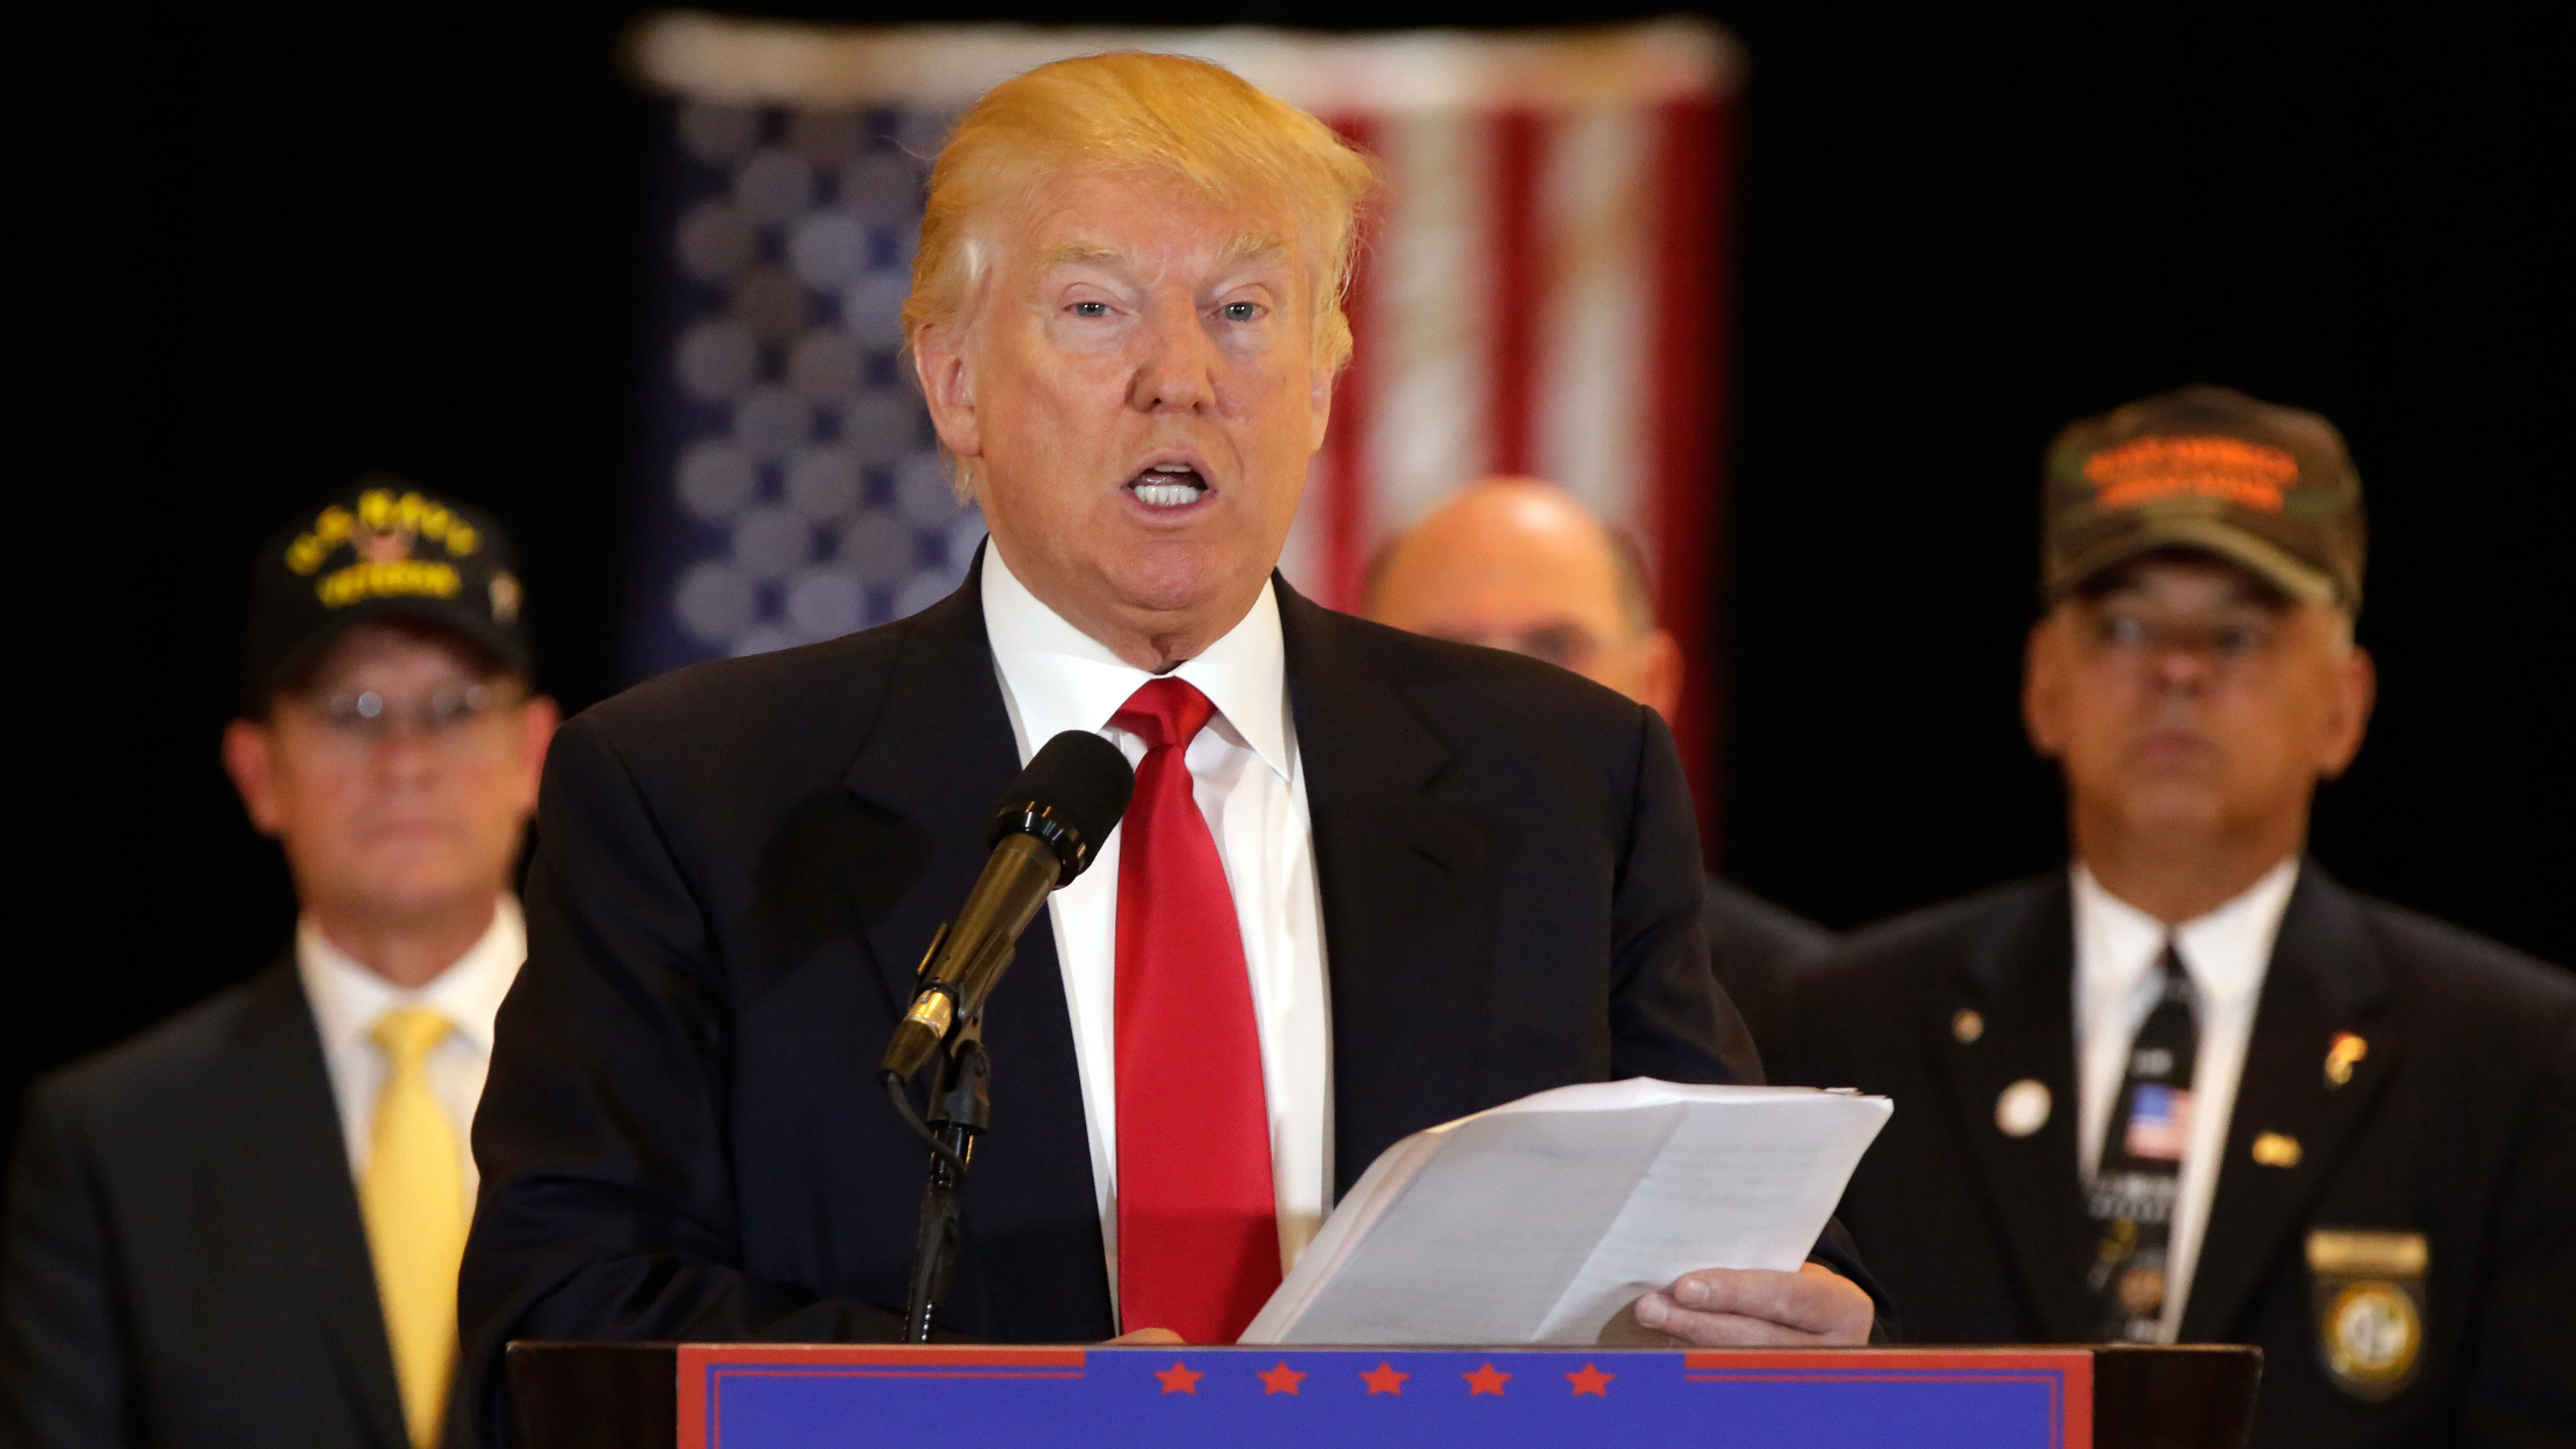 Donald Trump Released A List Of Veterans Groups He Says